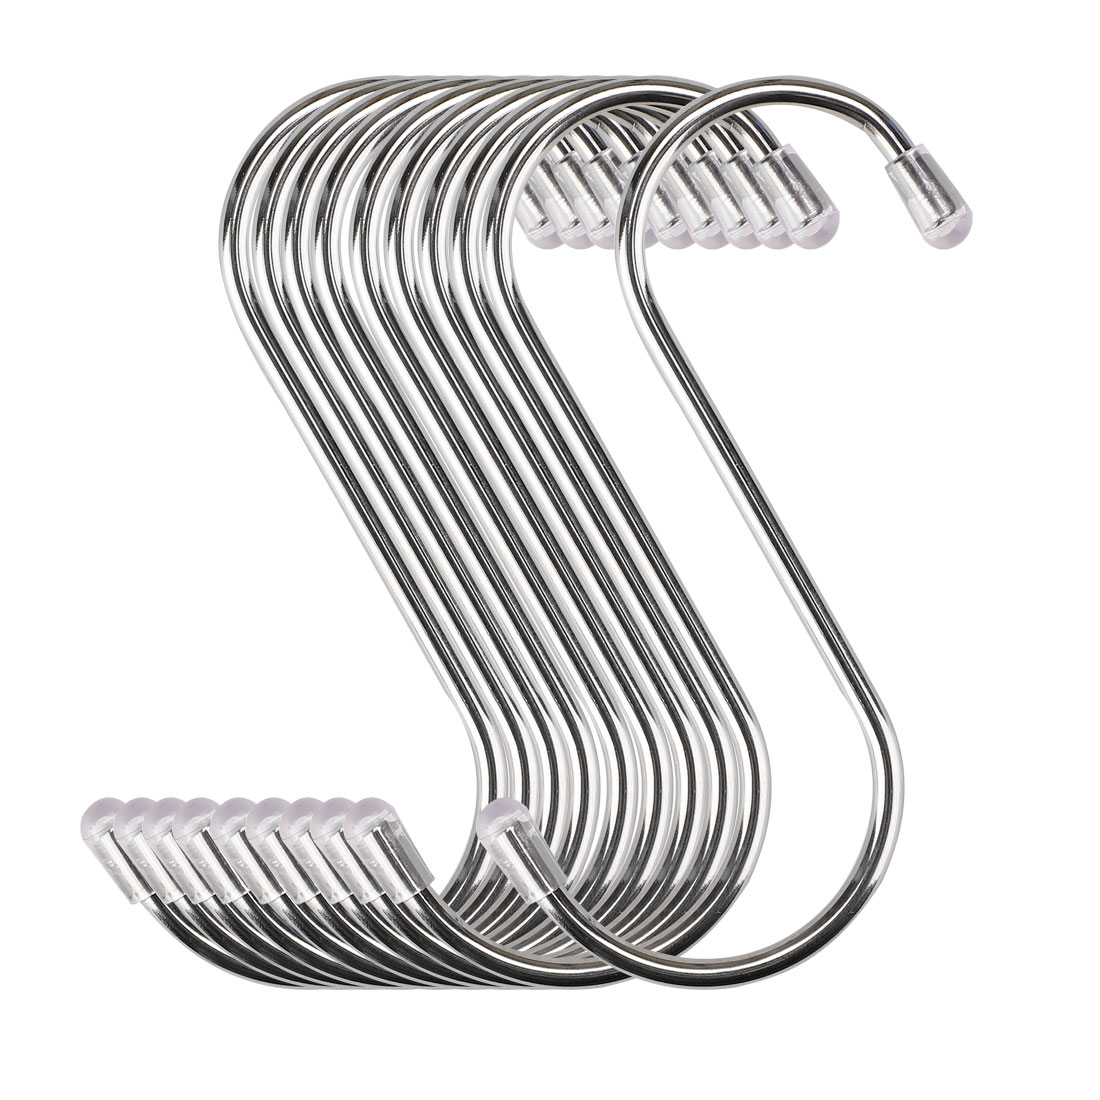 10pcs 3.46 Inch S Shaped Hook Stainless Steel for Kitchenware Hat Coat Holder